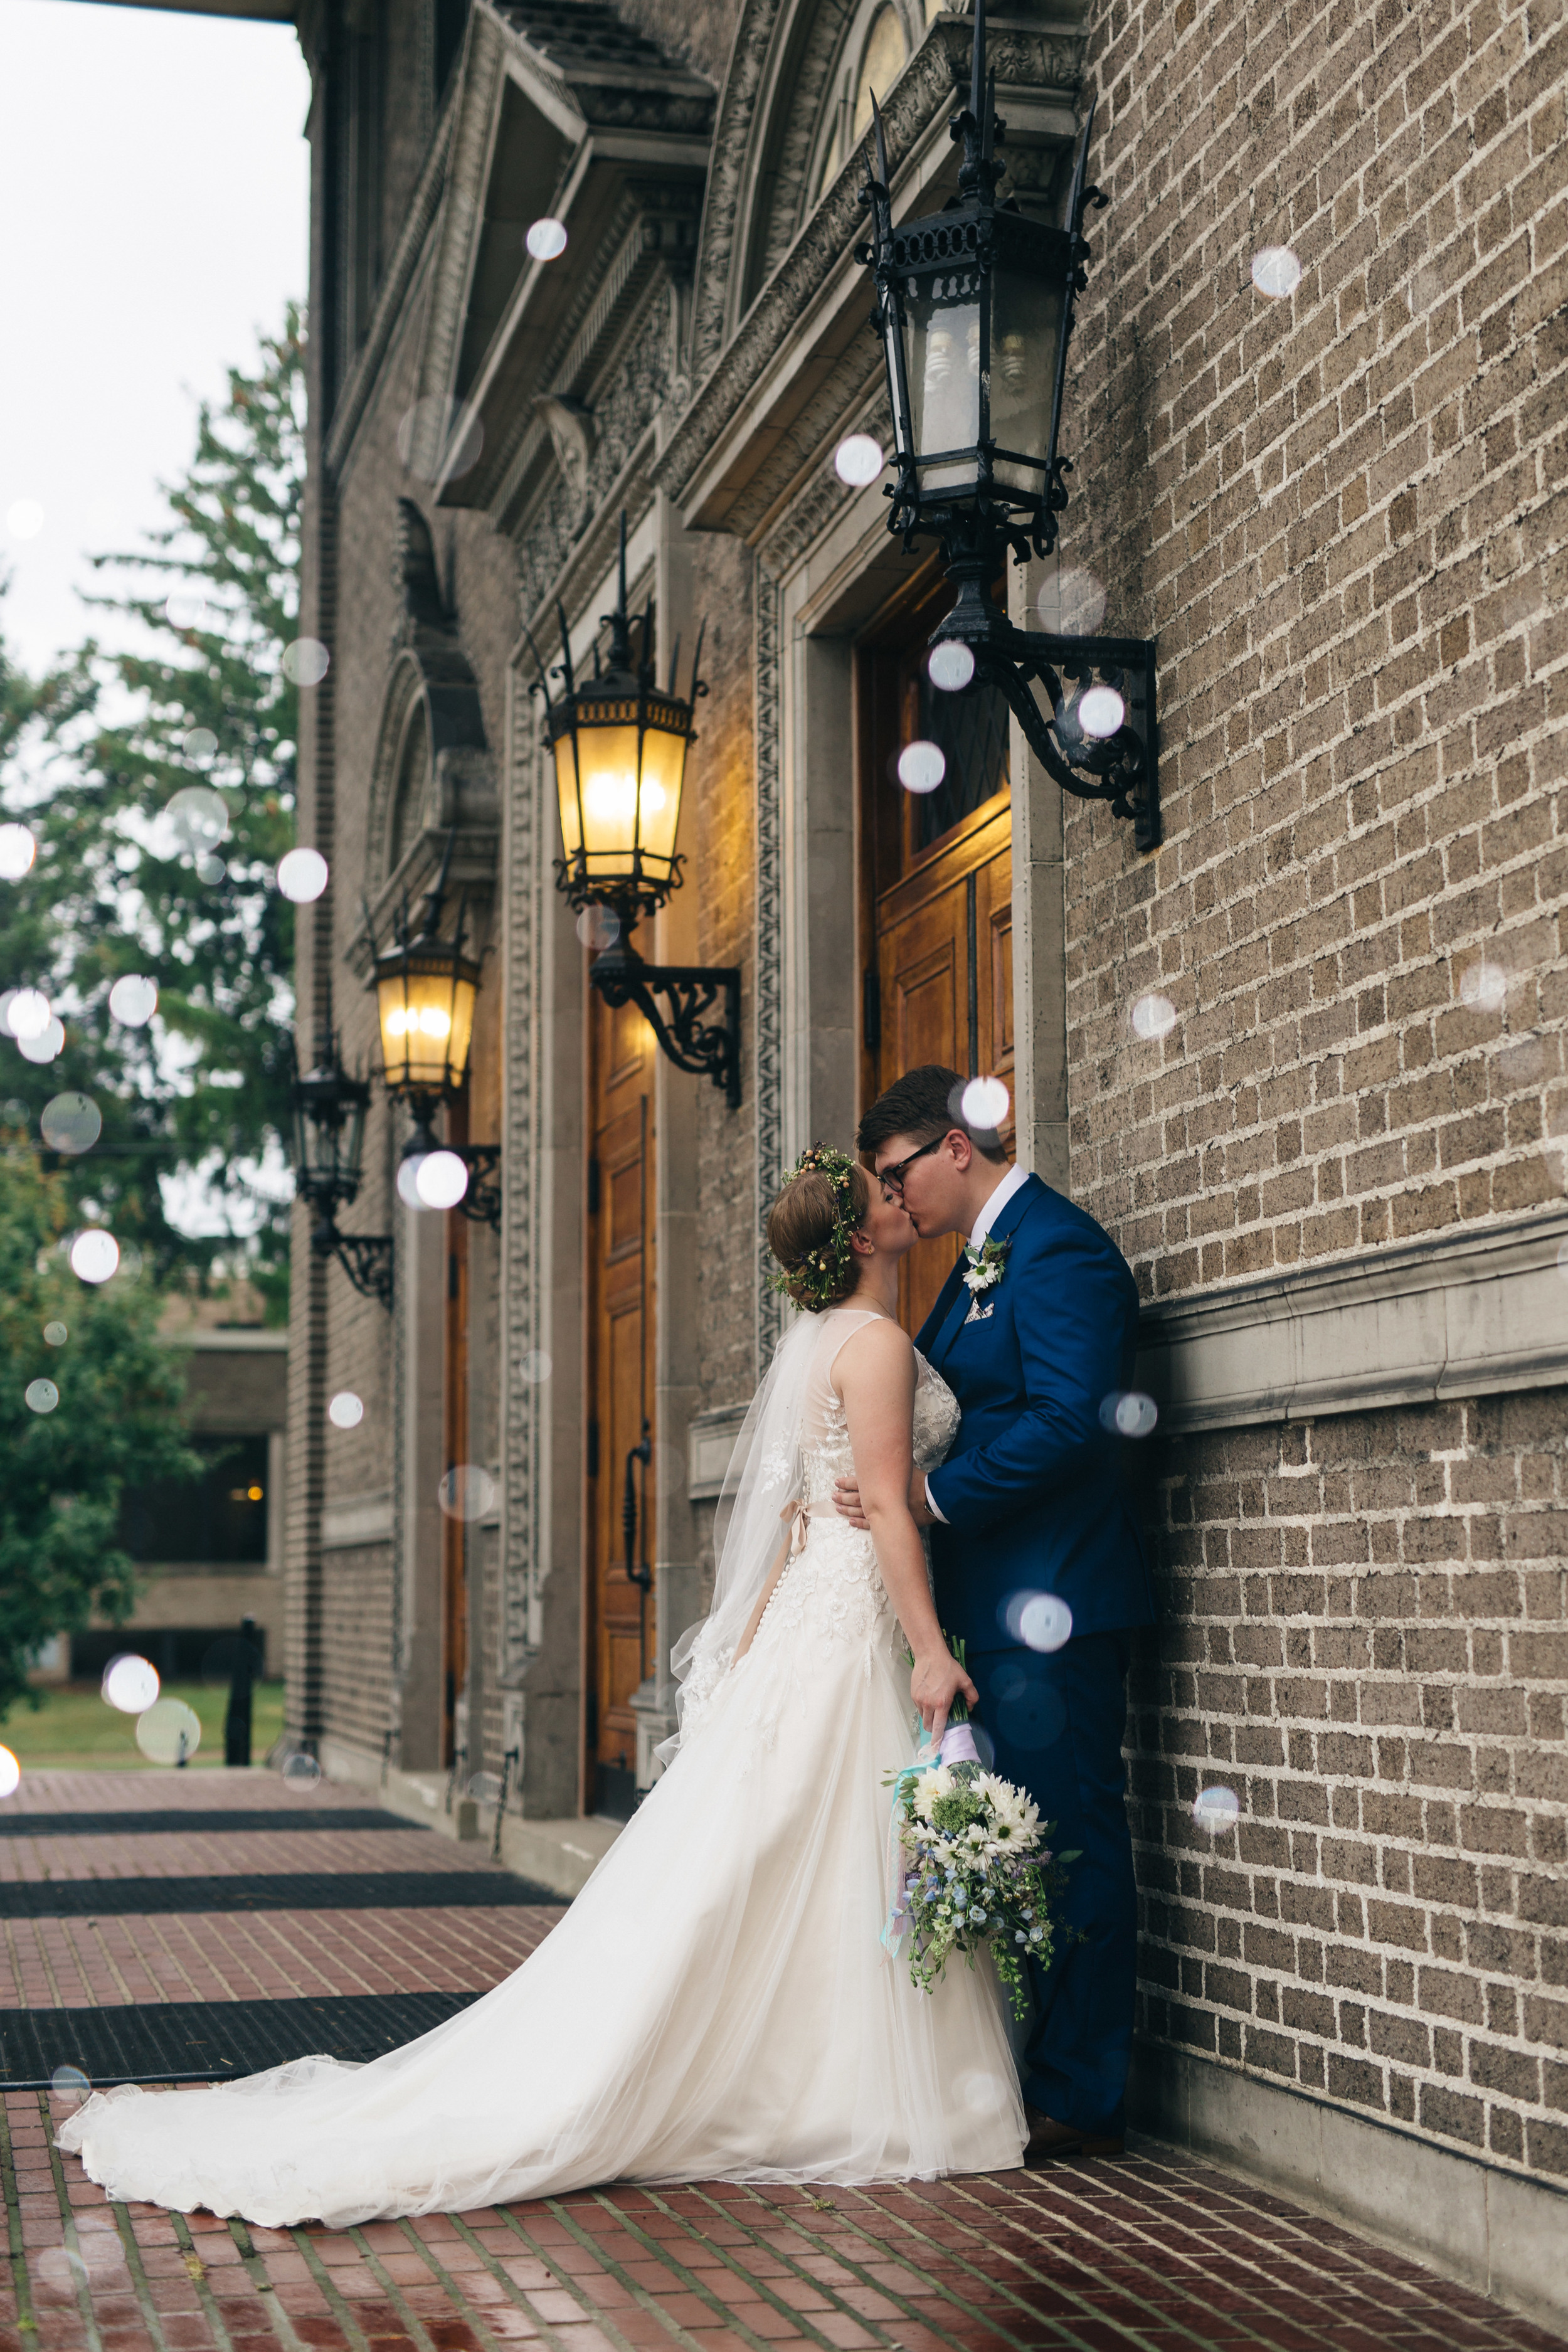 Wedding photography in Toledo, Ohio at First Congregational Church.